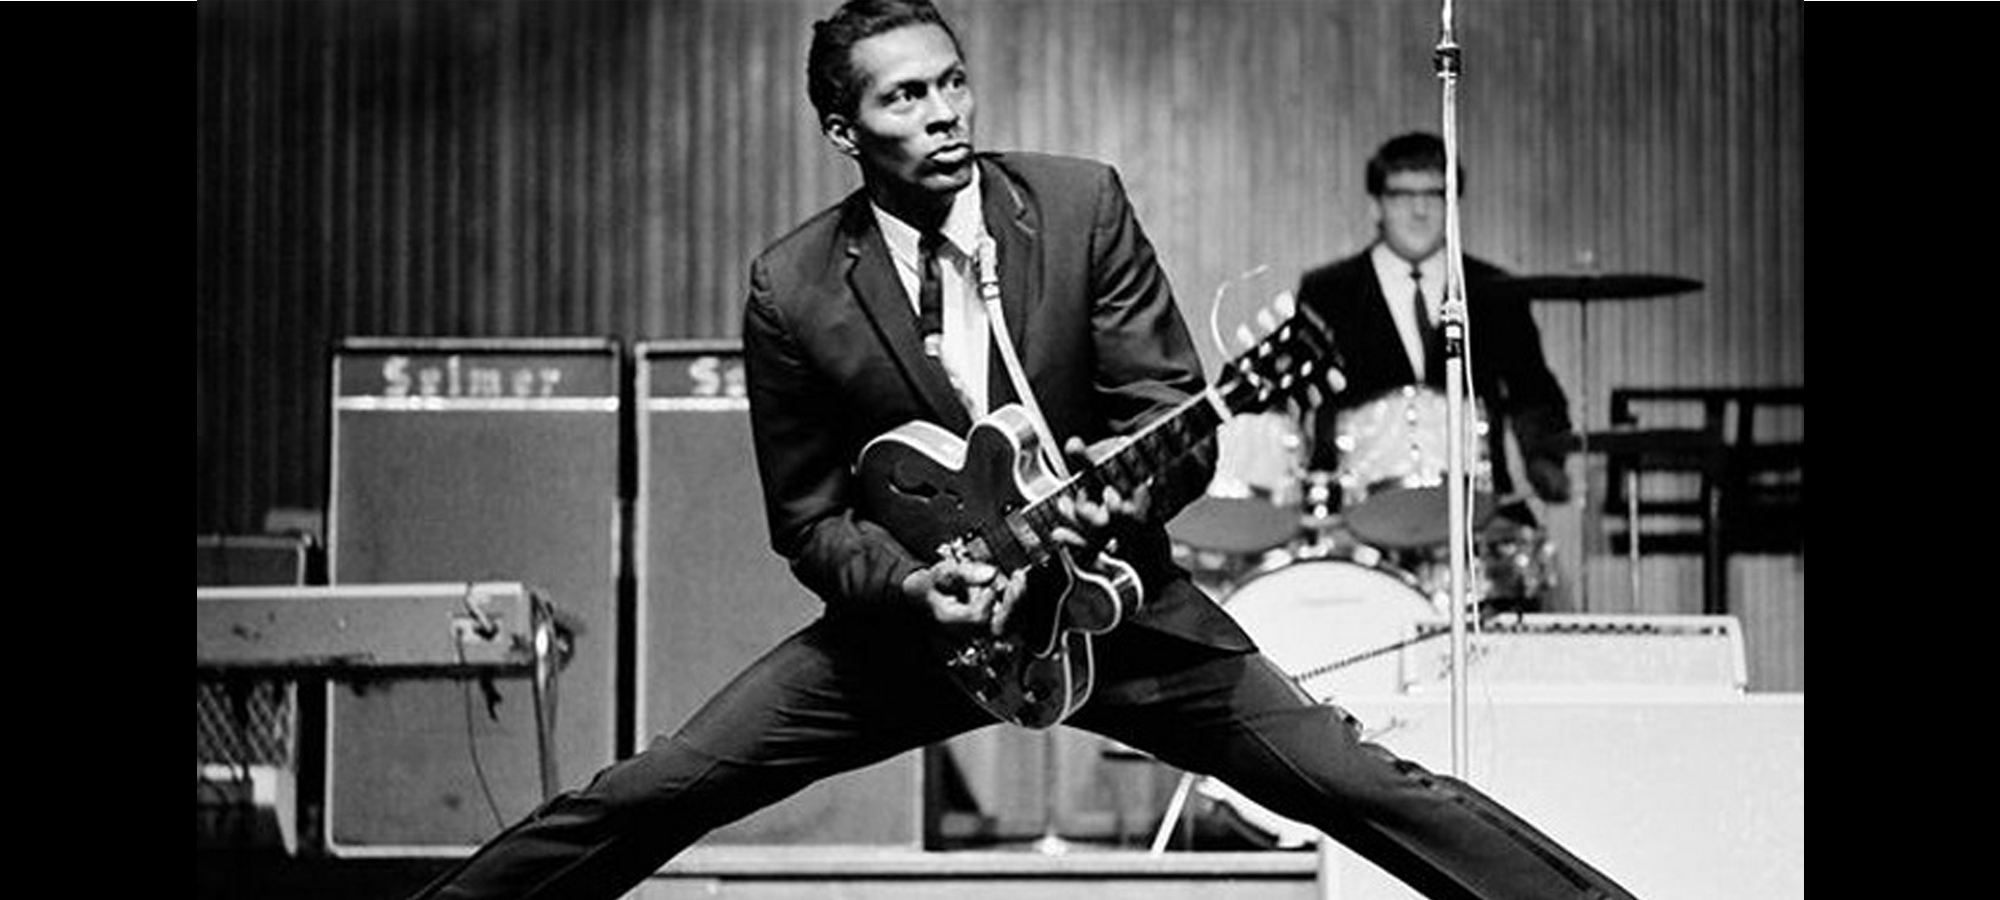 chuck-berry-new-album-news-2a7vc3dn